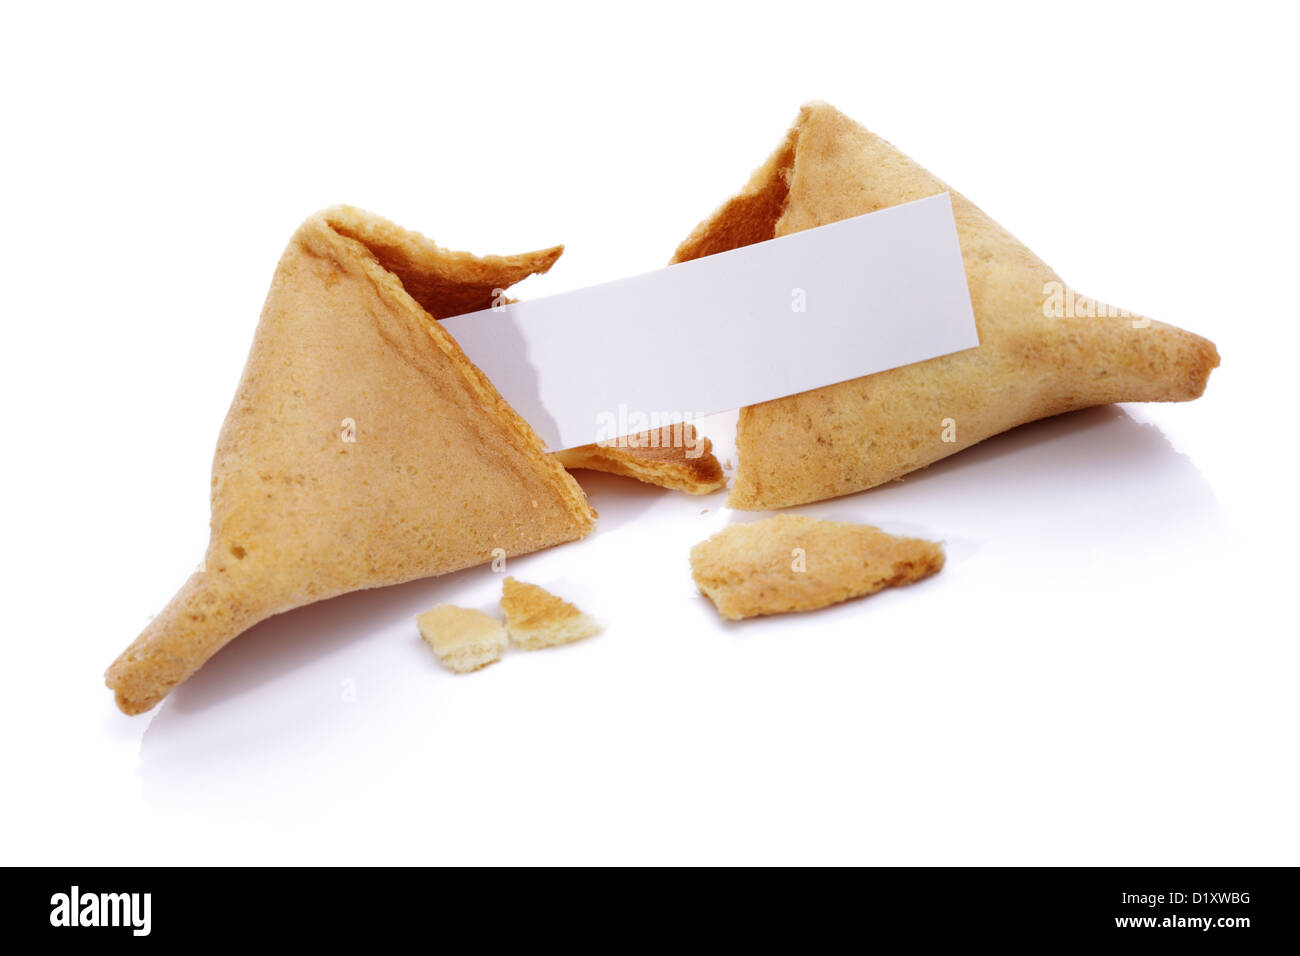 Fortune cookie Photo Stock